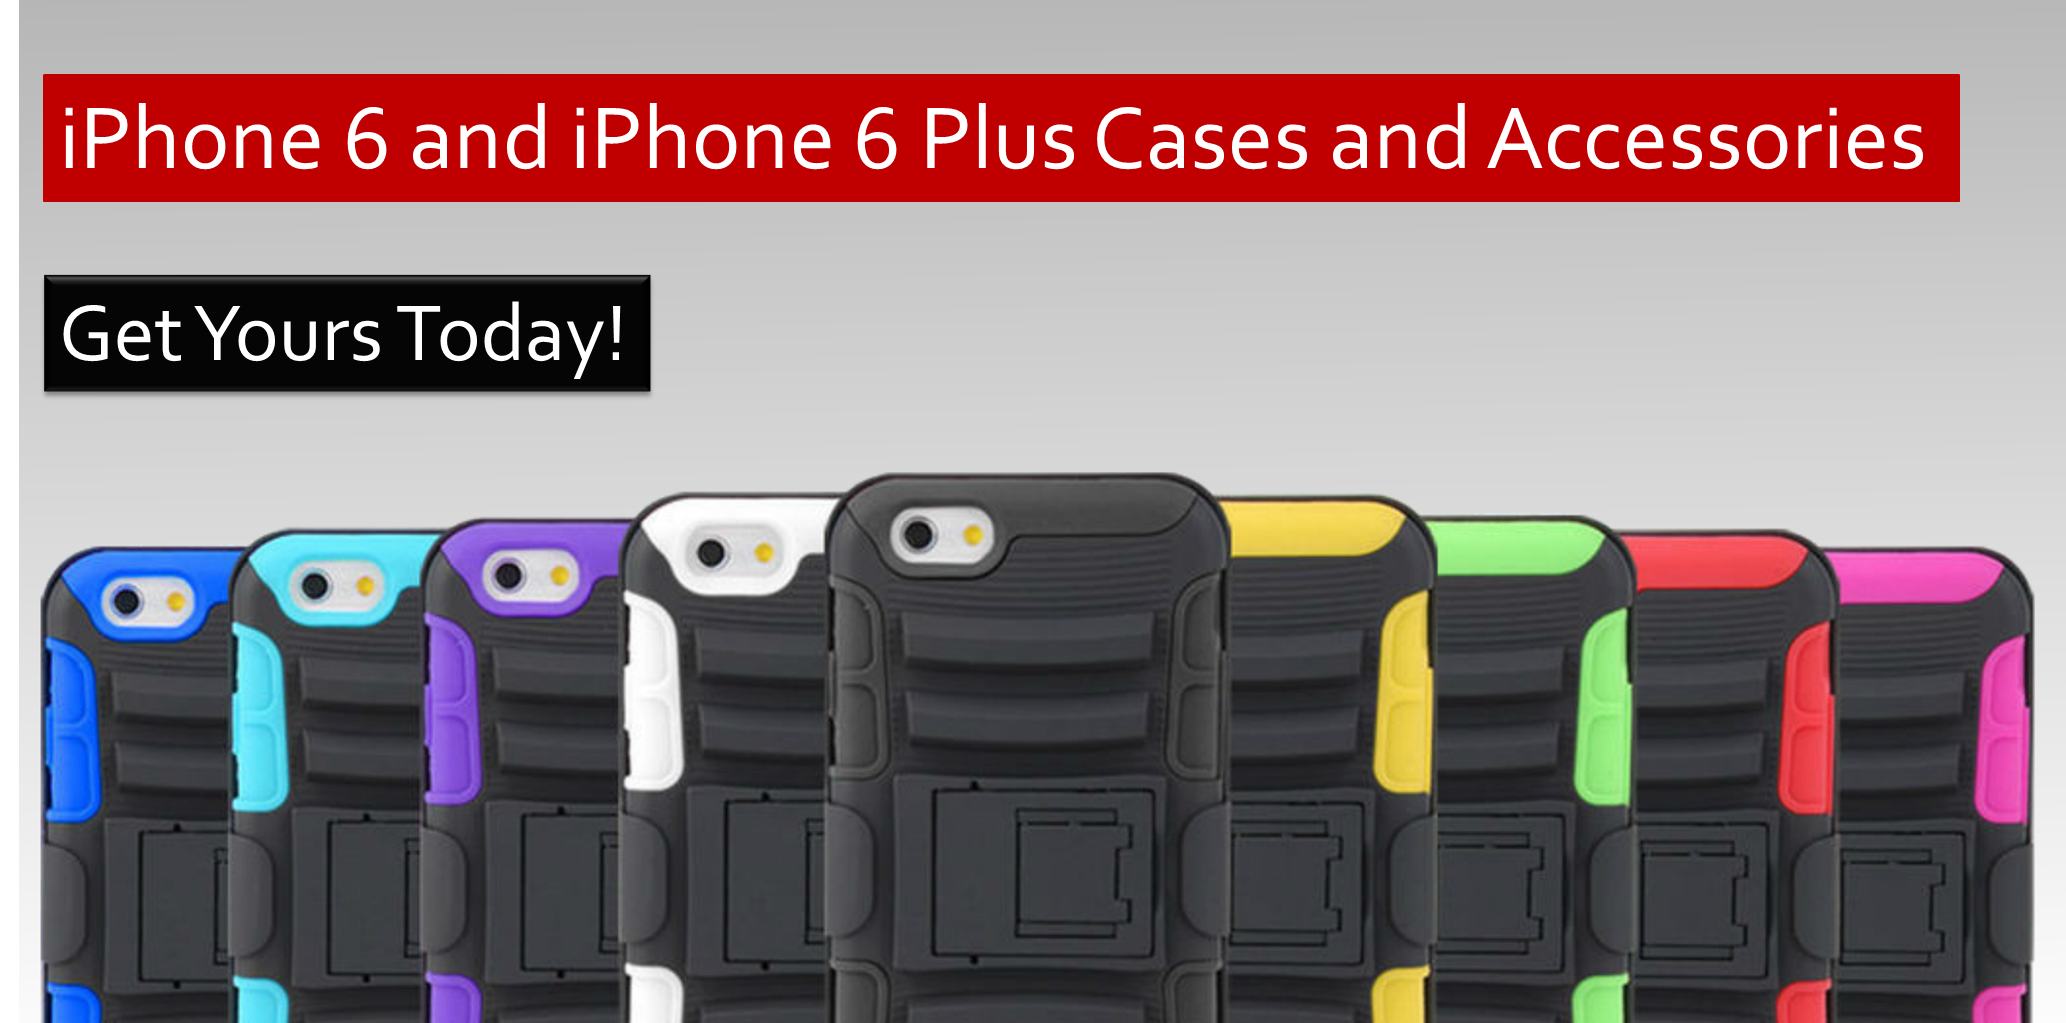 iphone-6-6-banner-2.png